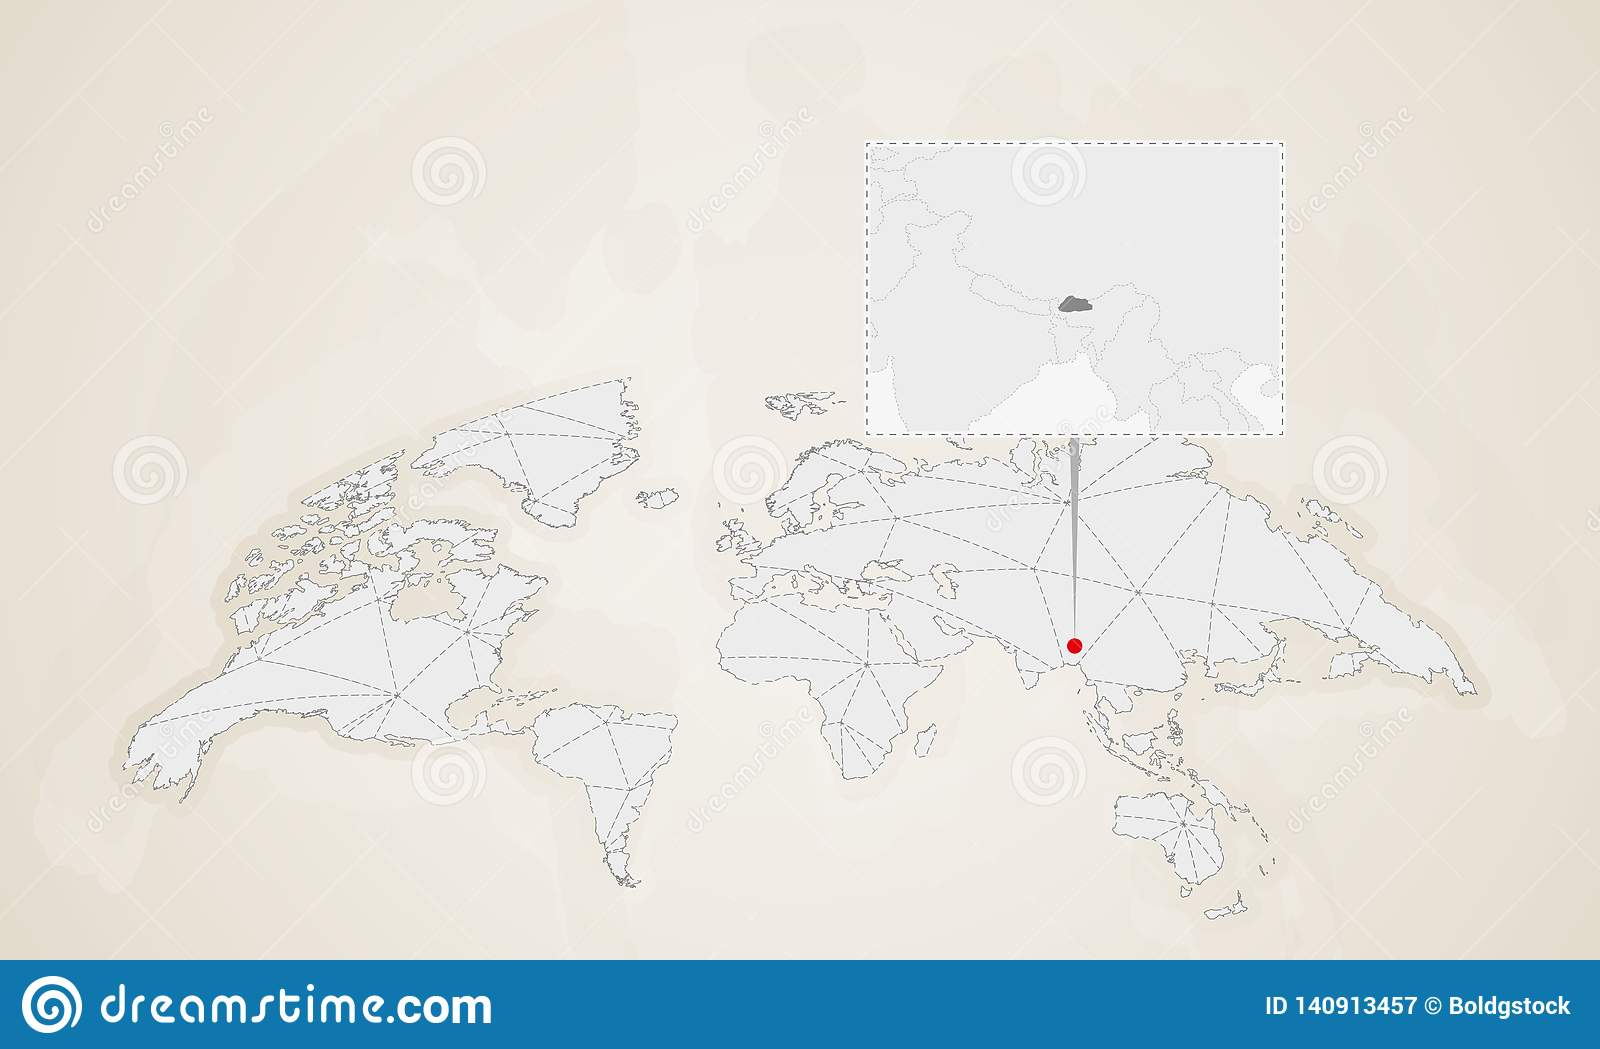 Map Of Bhutan With Neighbor Countries Pinned On World Map ... Map Of Bhutan on map of chile, united states of america, map of india, map of peru, map of sri lanka, map of japan, map of nepal, map of myanmar, map of k2, jetsun pema, map of china, map of middle east, map of iraq, map of singapore, map of tibet, south asia, sri lanka, map of brunei, map of philippines, map of liechtenstein, map of bangladesh, map of turkey, map of himalayas, map of asia,